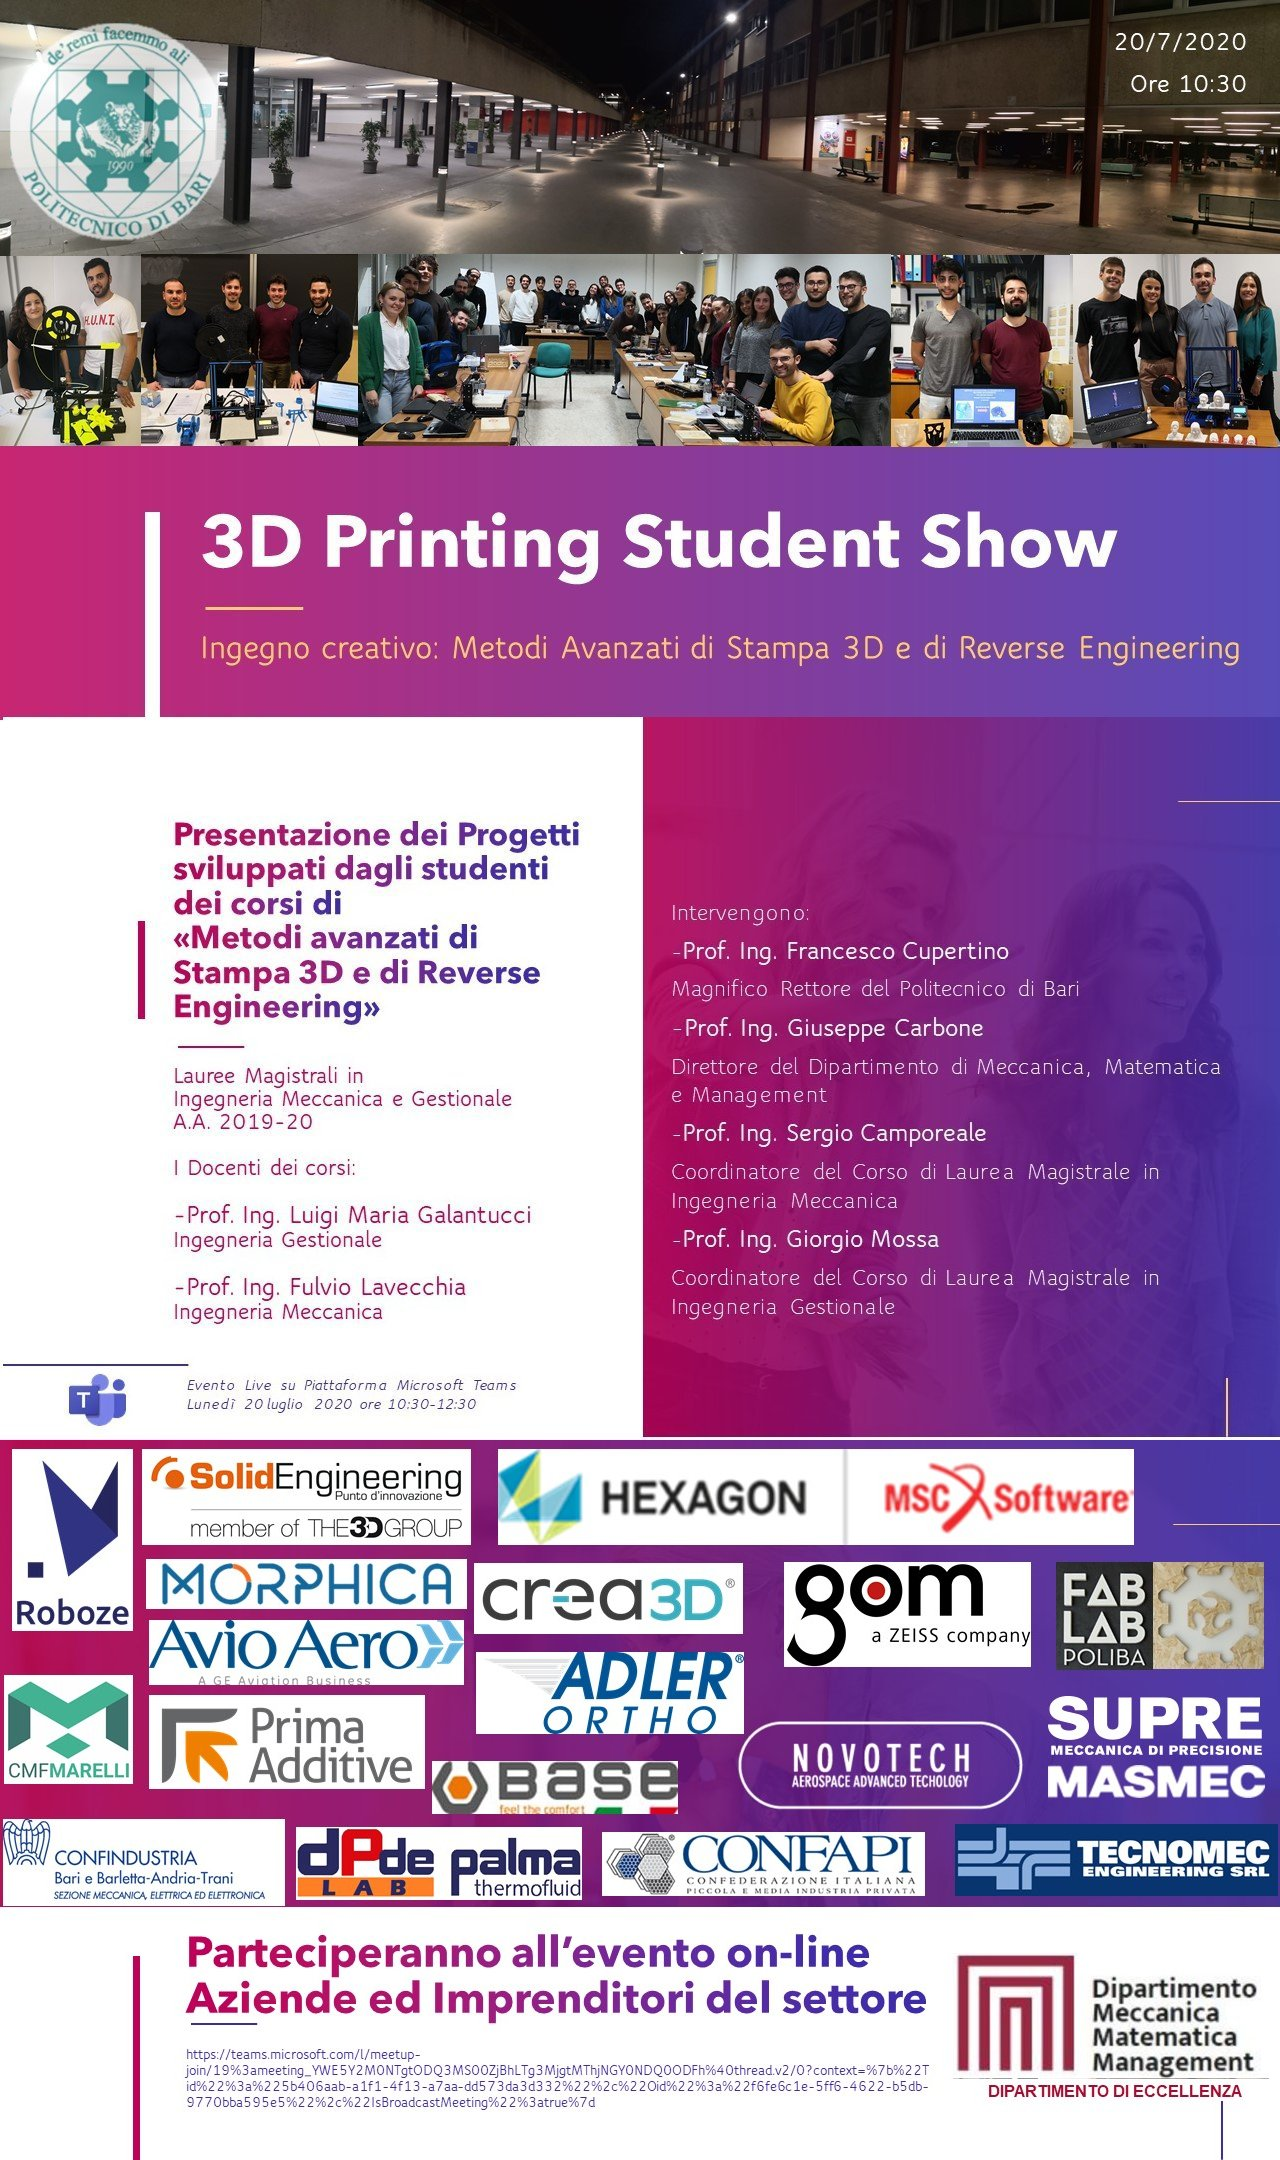 3d printing studen show